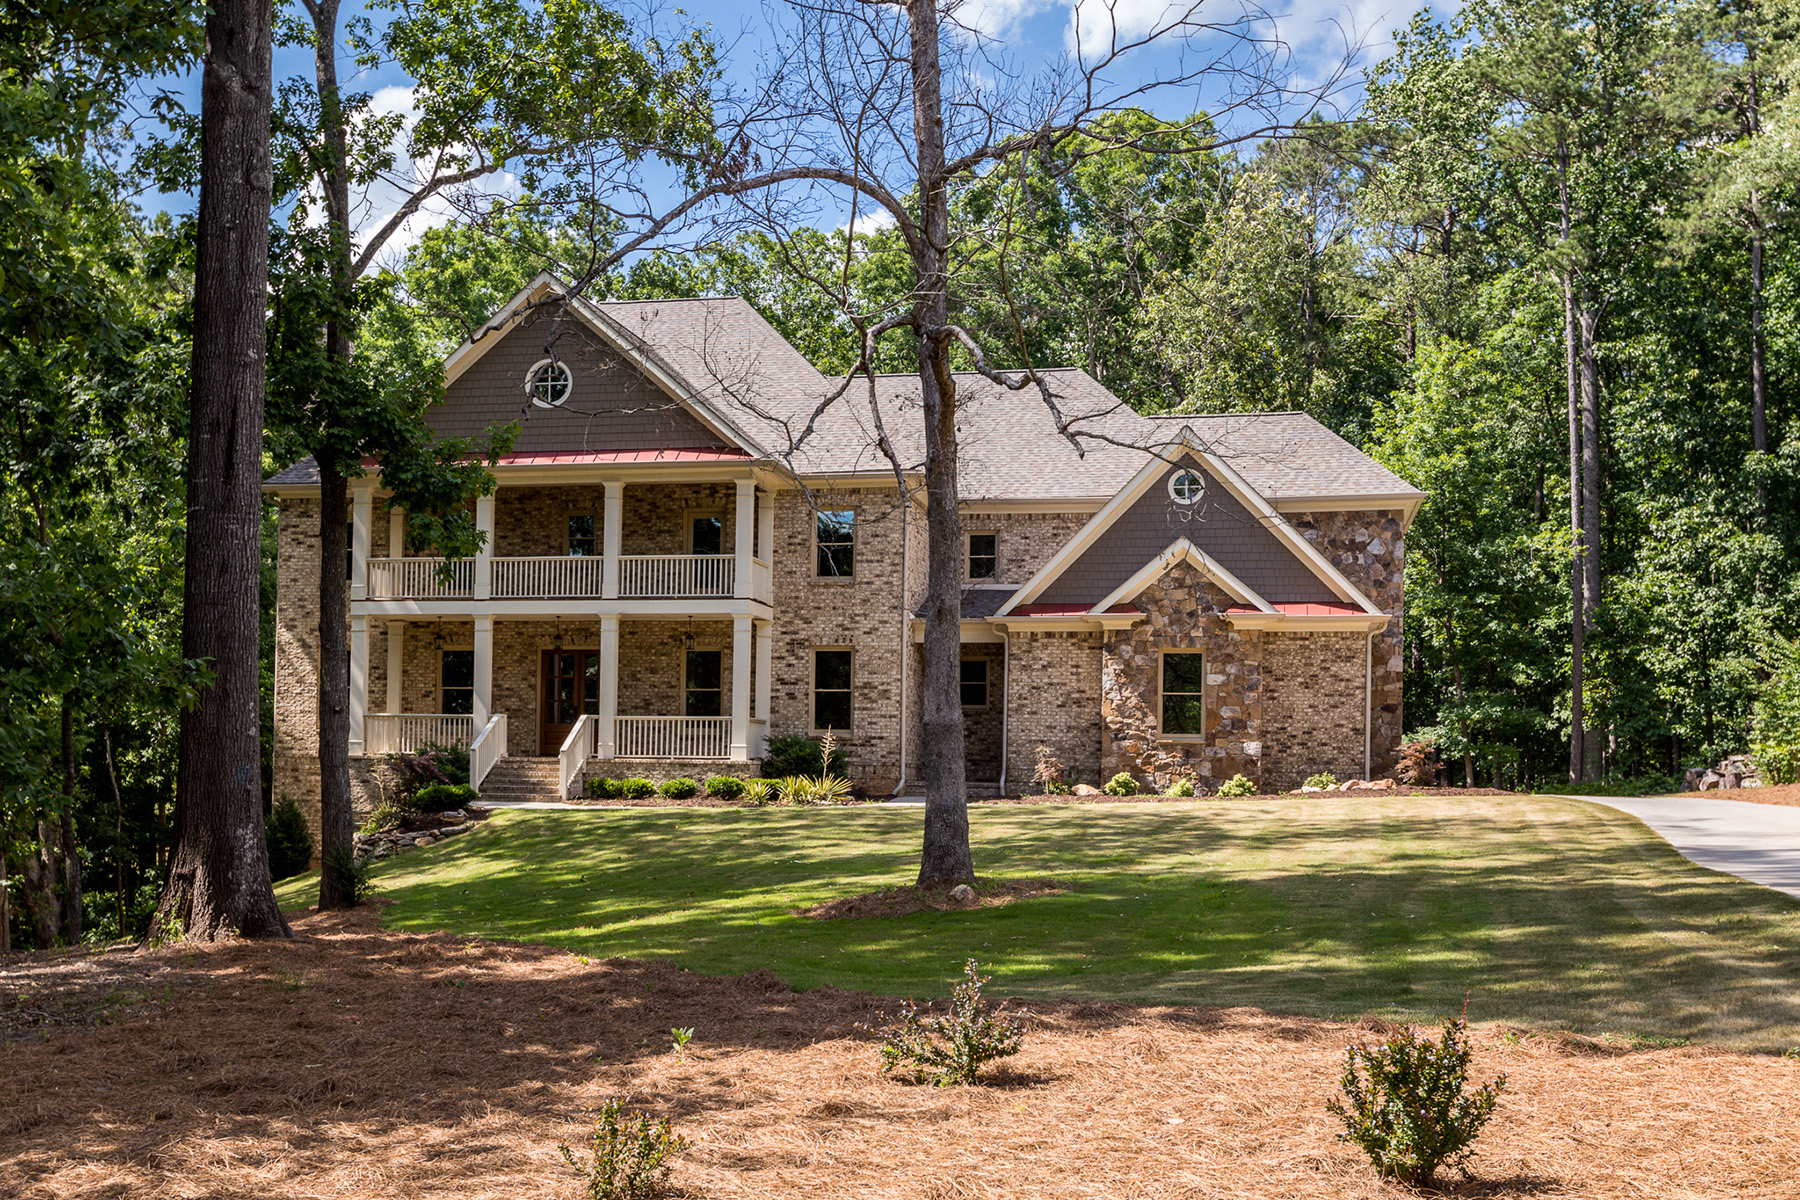 Single Family Homes for Active at Luxury Living In The Heart Of Roswell On A Two Acre Estate Lot 1025 Jones Road Roswell, Georgia 30075 United States